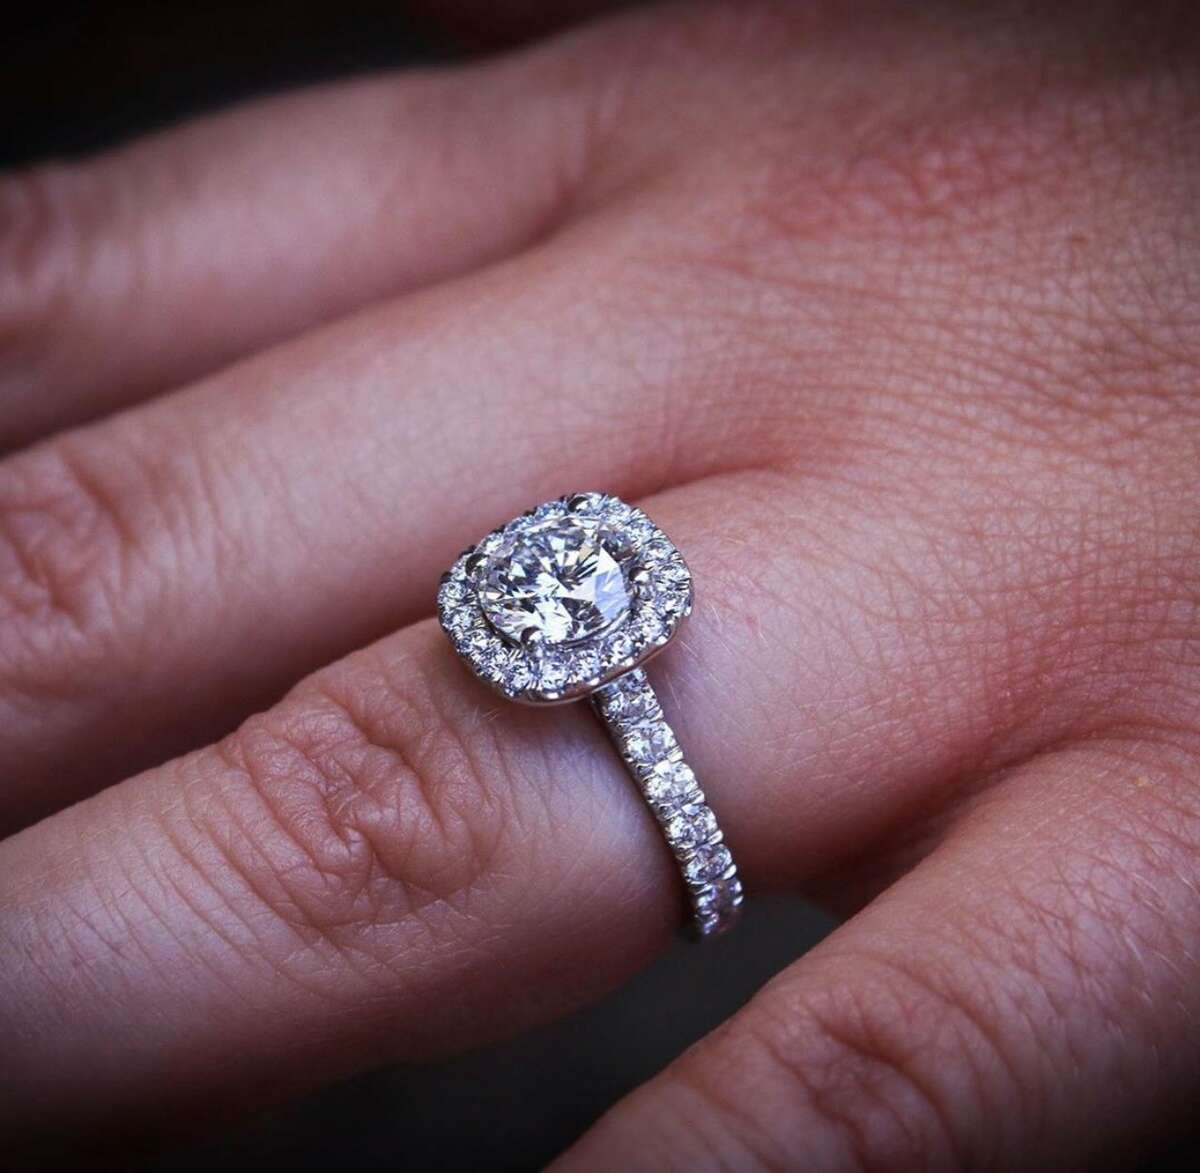 WNYT sports reporters Ashley Miller and Chris Onorato got engaged in Nashville.